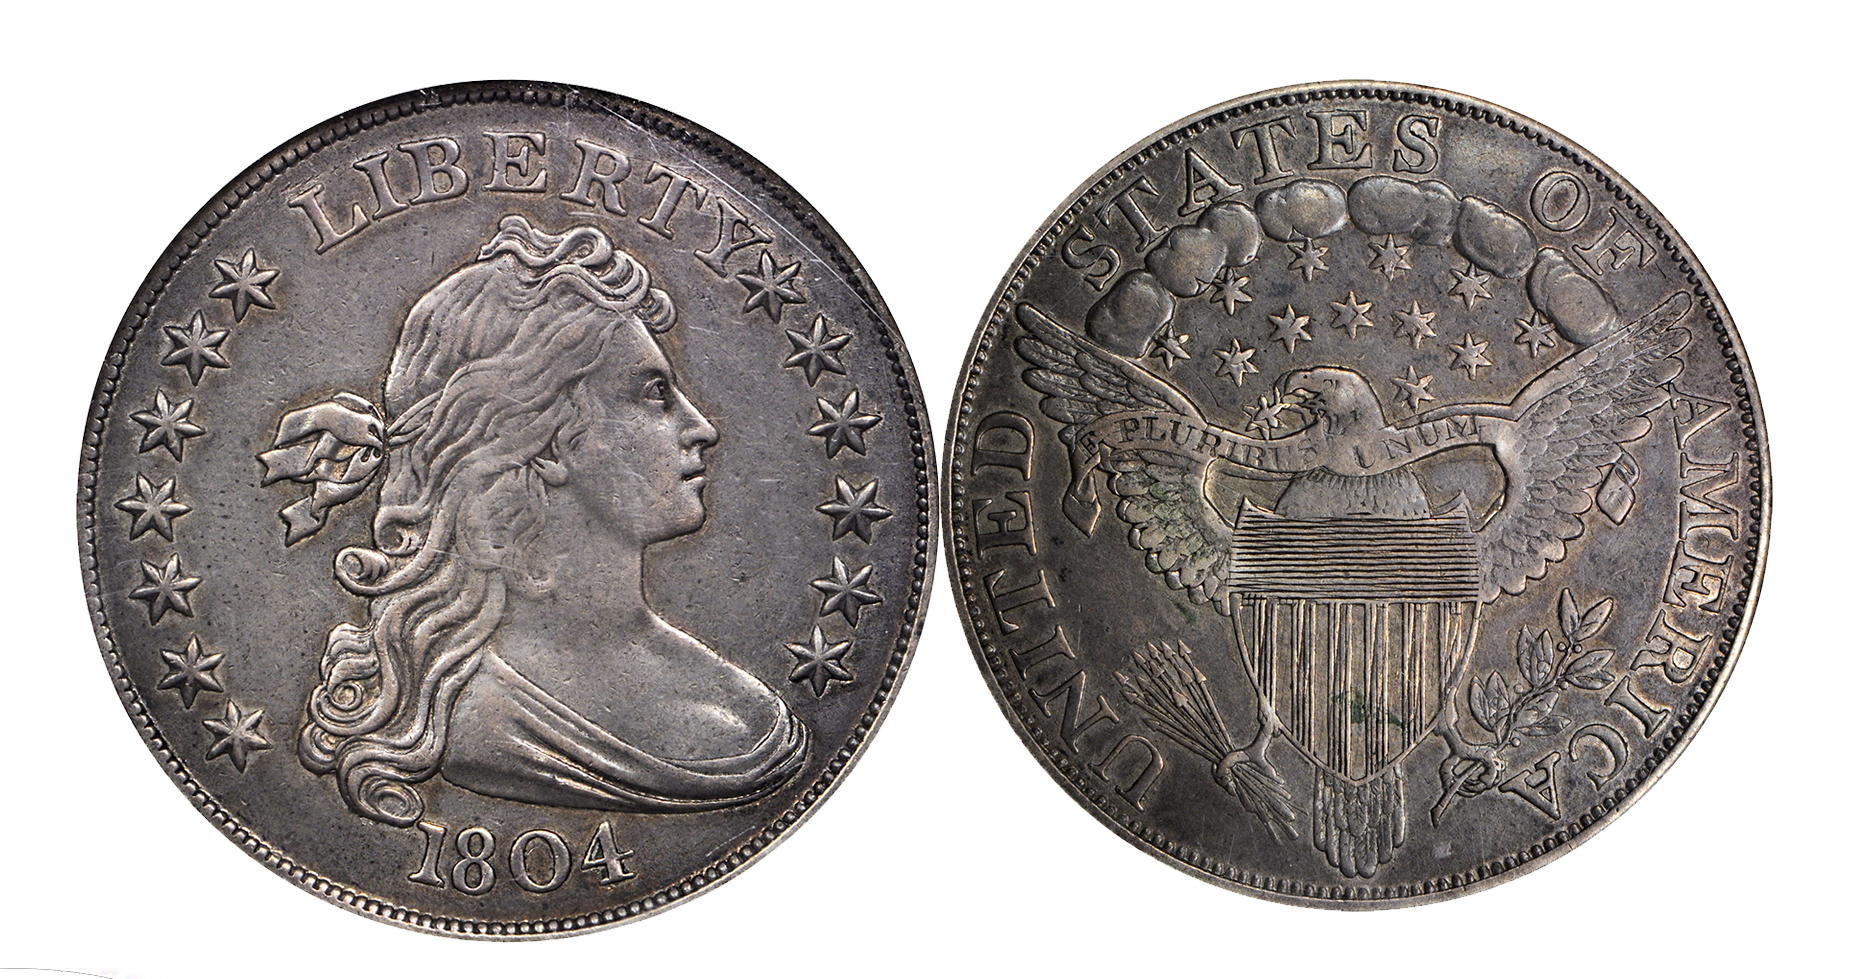 garrett Stacks Bowers Galleries to Sell Garrett 1804 Dollar (PR 55 NGC)